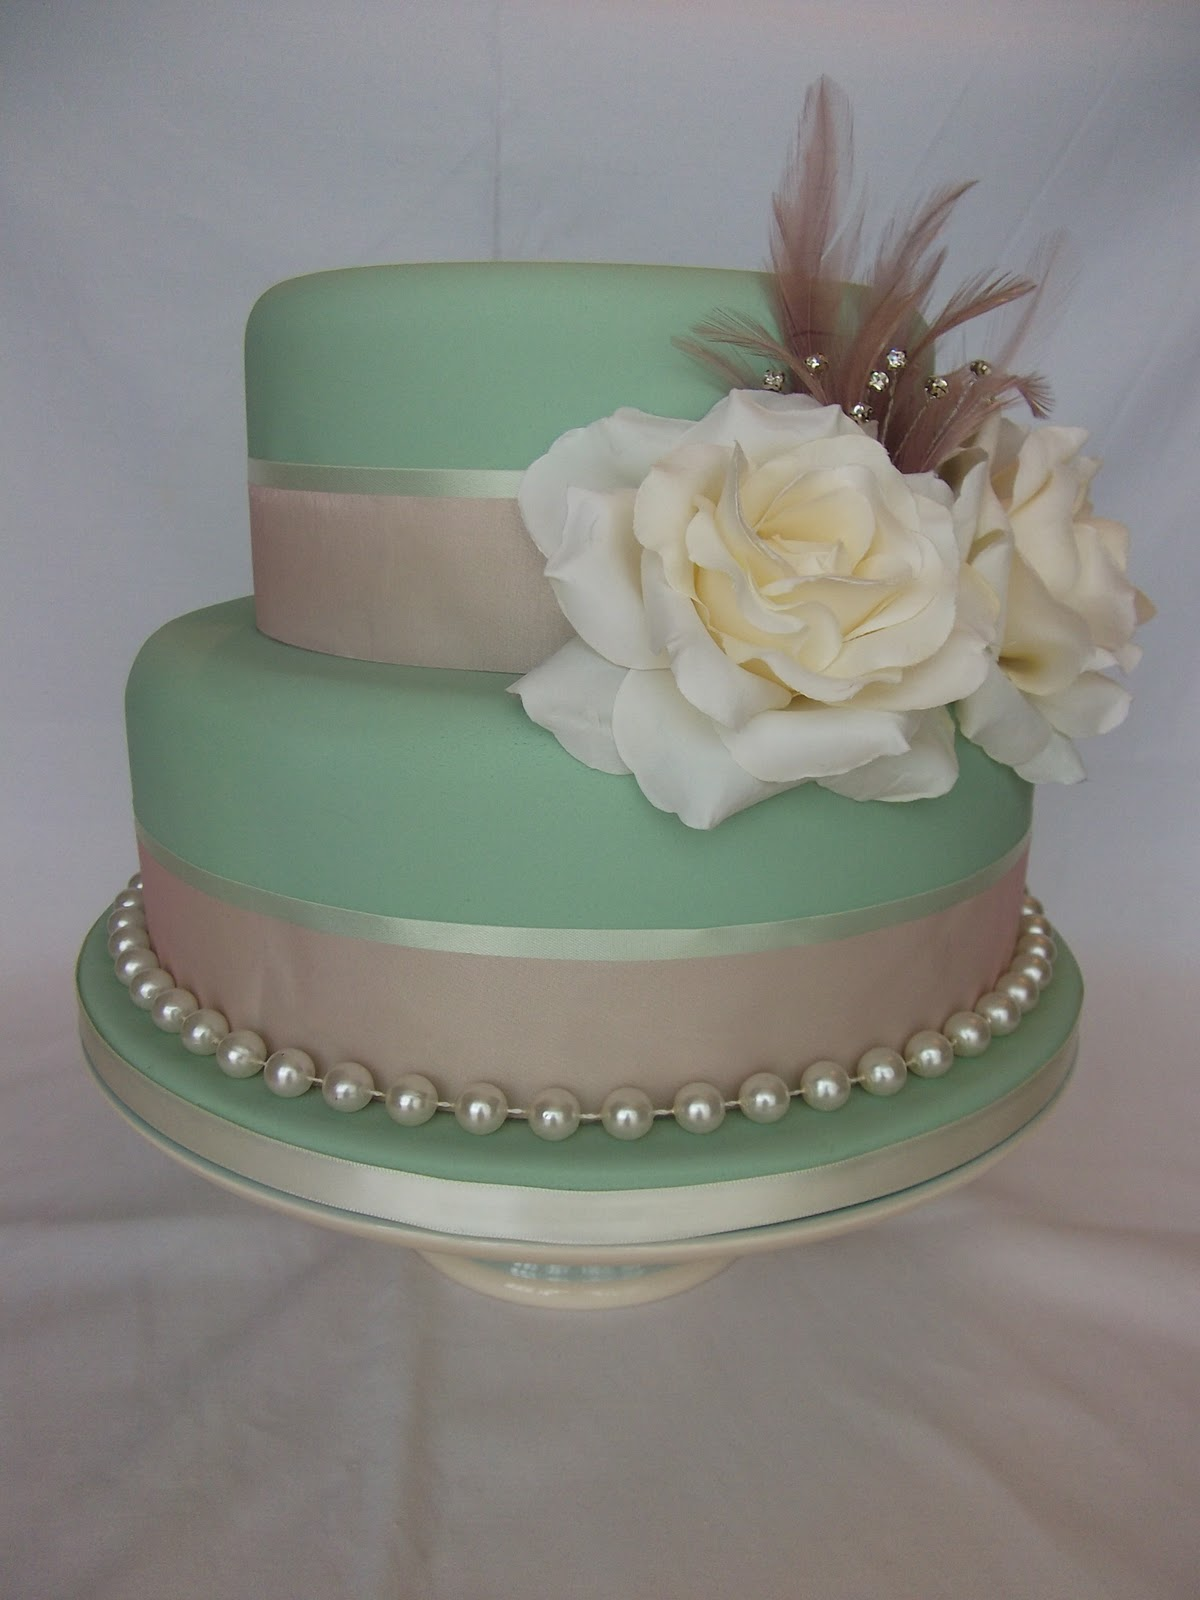 The LILY ROSE Cake Co Vintage Wedding Cake